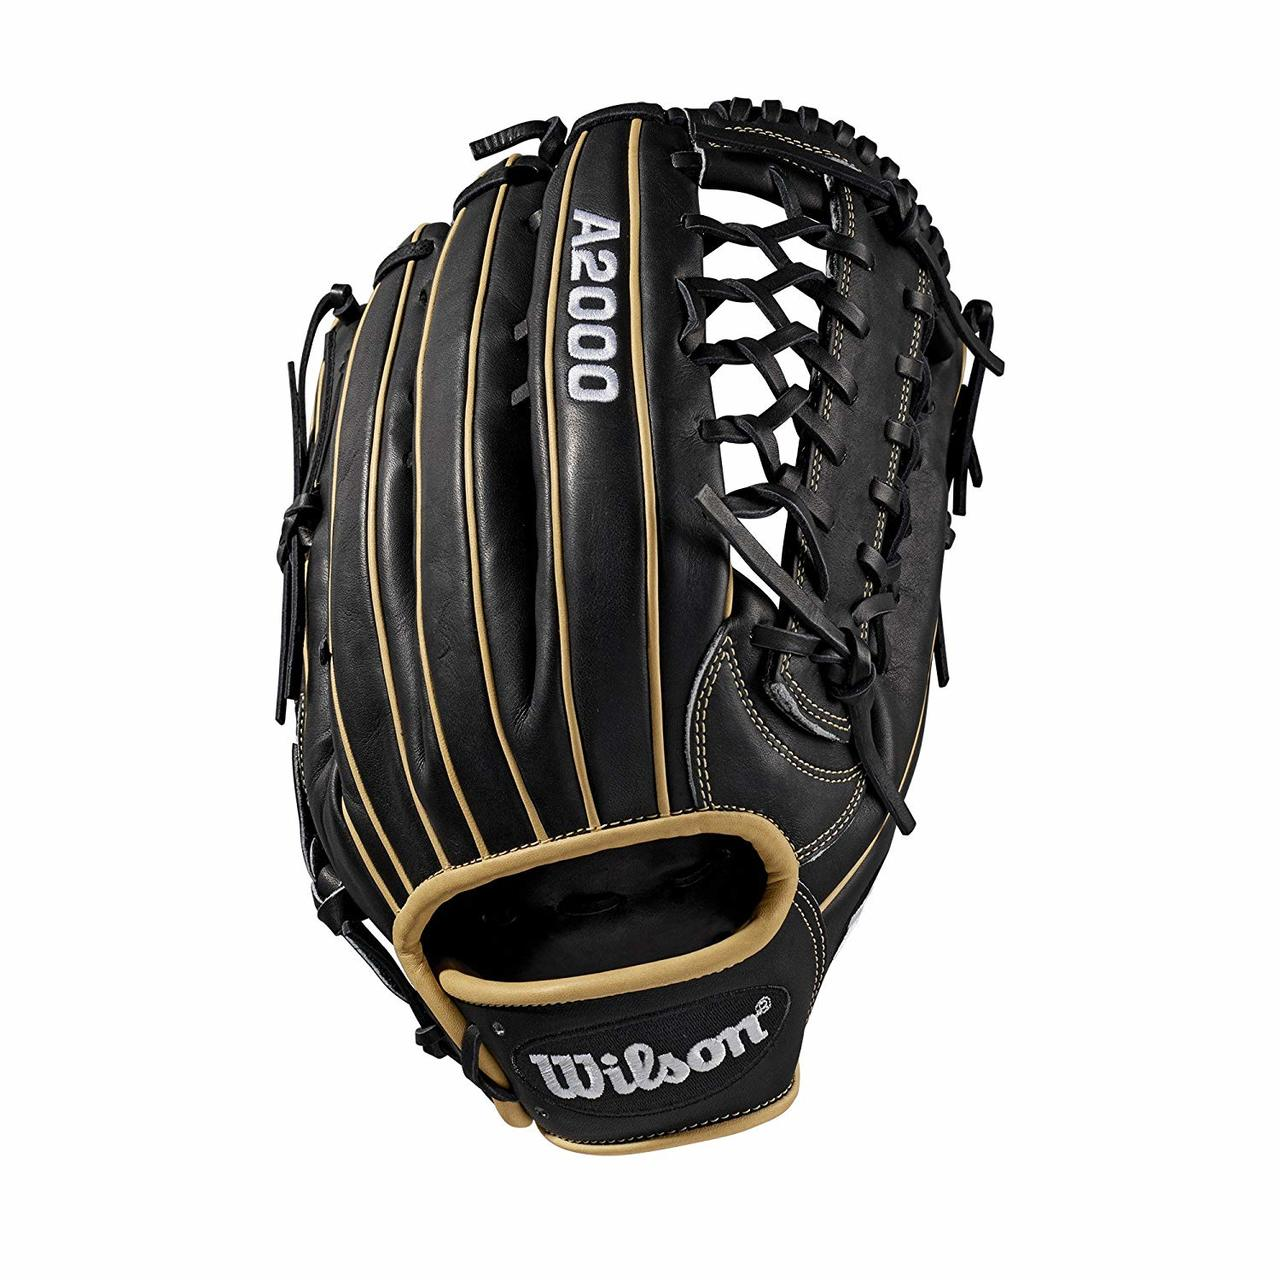 wilson-a2000-kp92-12-5-baseball-glove-2019-right-hand-throw WTA20RB19KP92-RightHandThrow Wilson 887768721626 The A2000 KP92 is a widely popular model among outfielders for